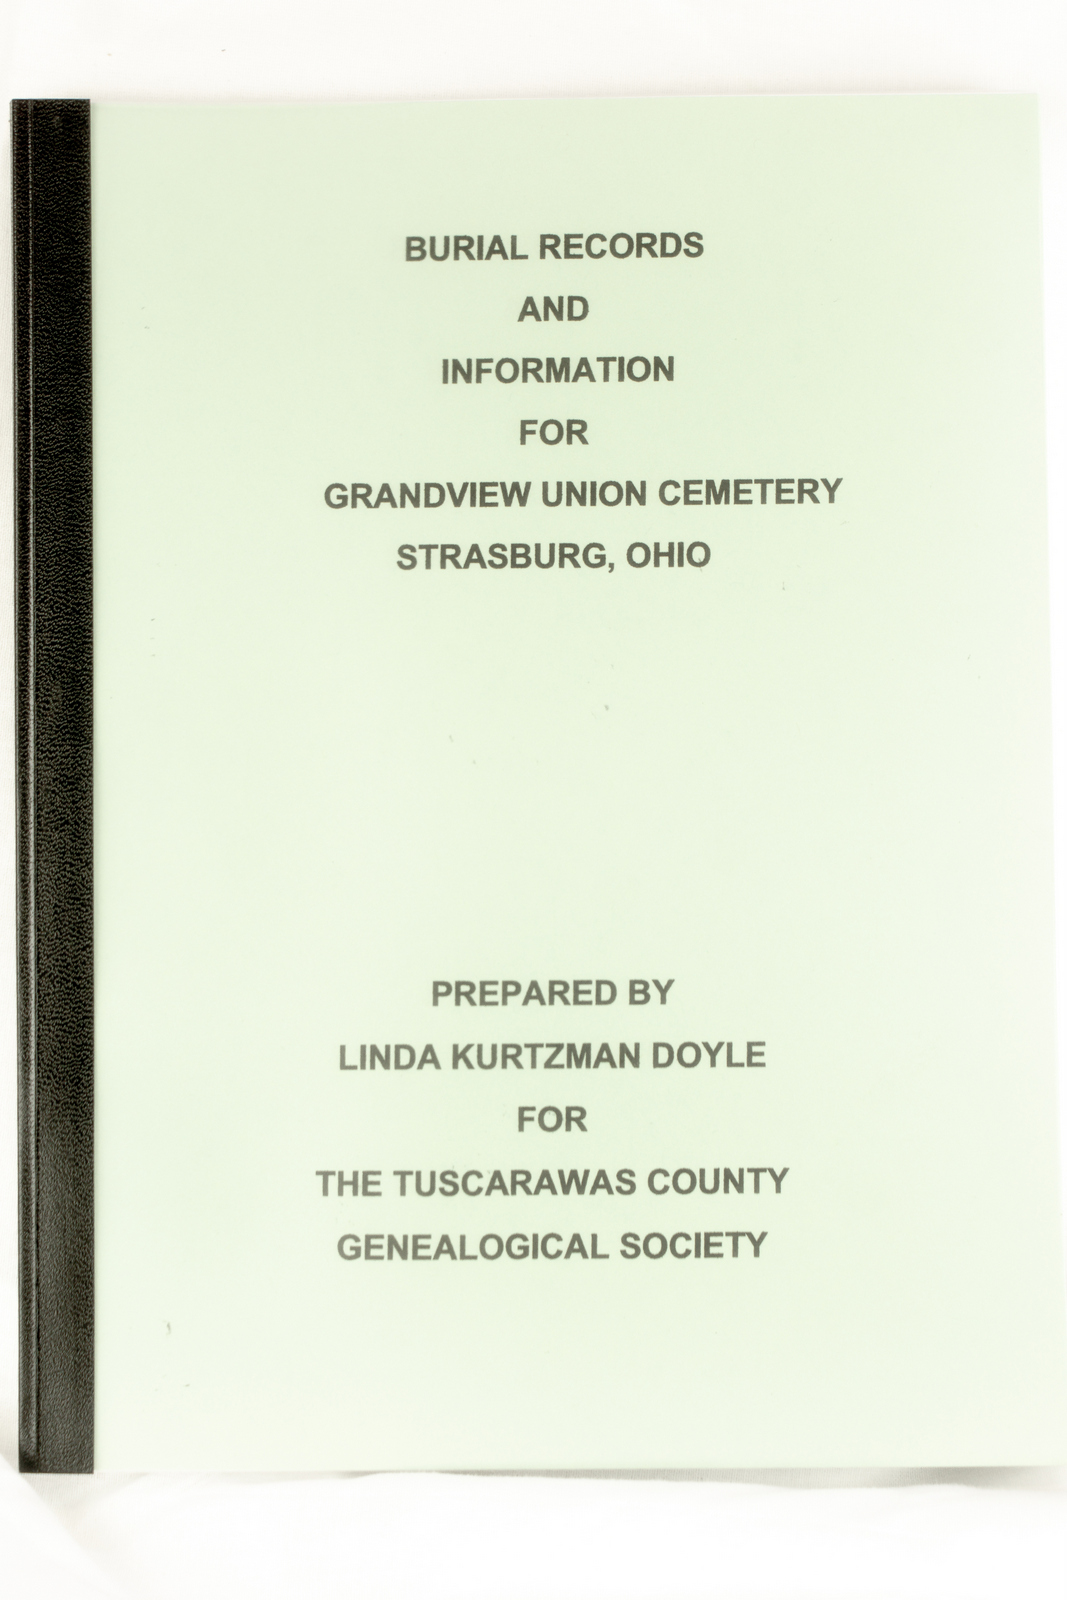 BURIAL RECORDS AND INFORMATION FOR GRANDVIEW UNION CEMETERY STRASBURG, OHIO